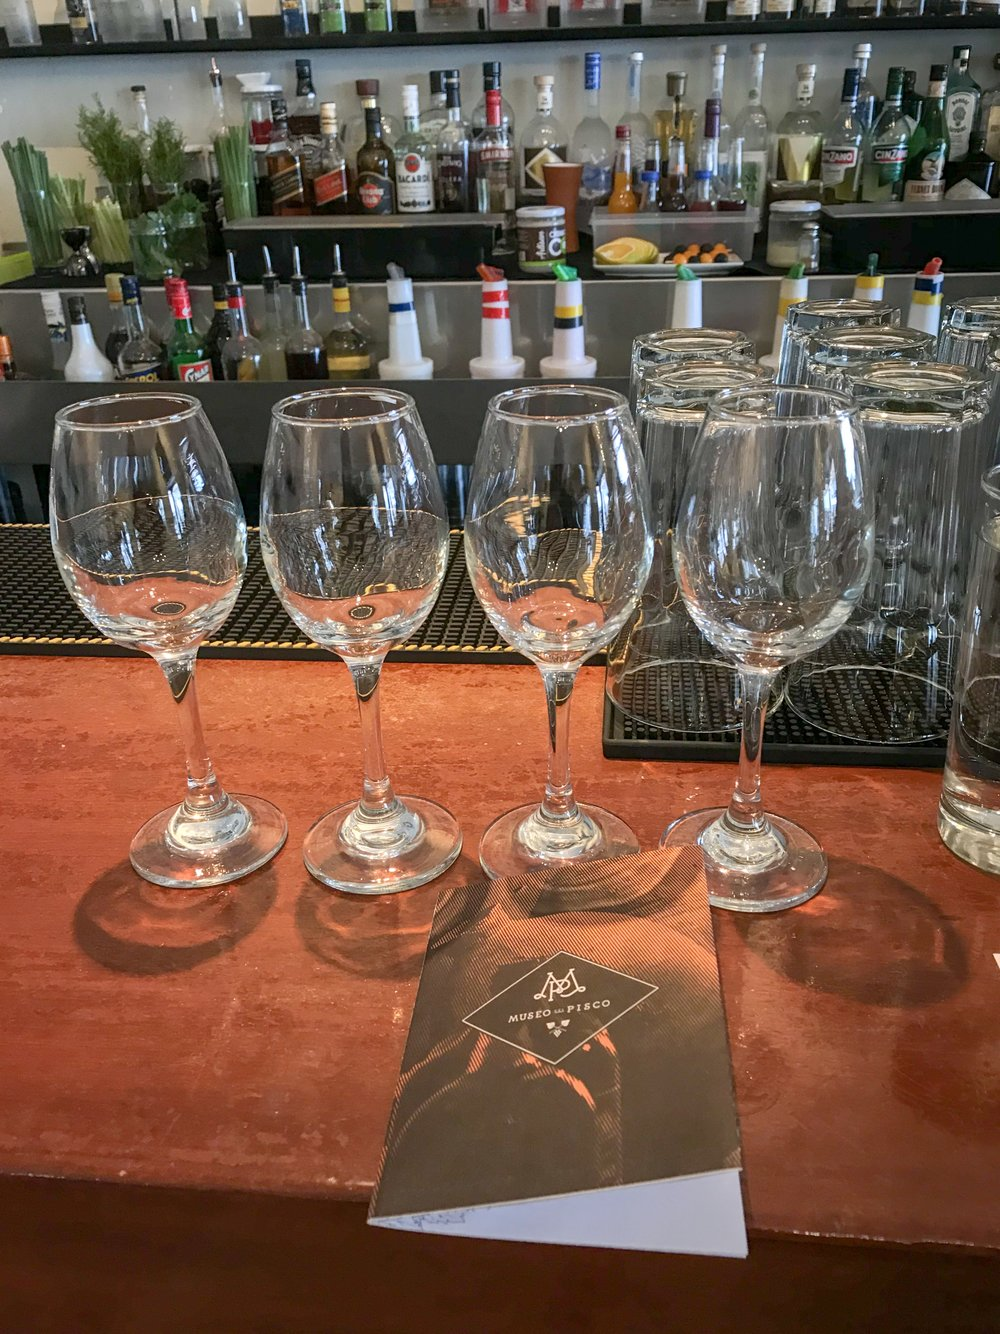 Pisco Museum Tasting Glasses.jpg